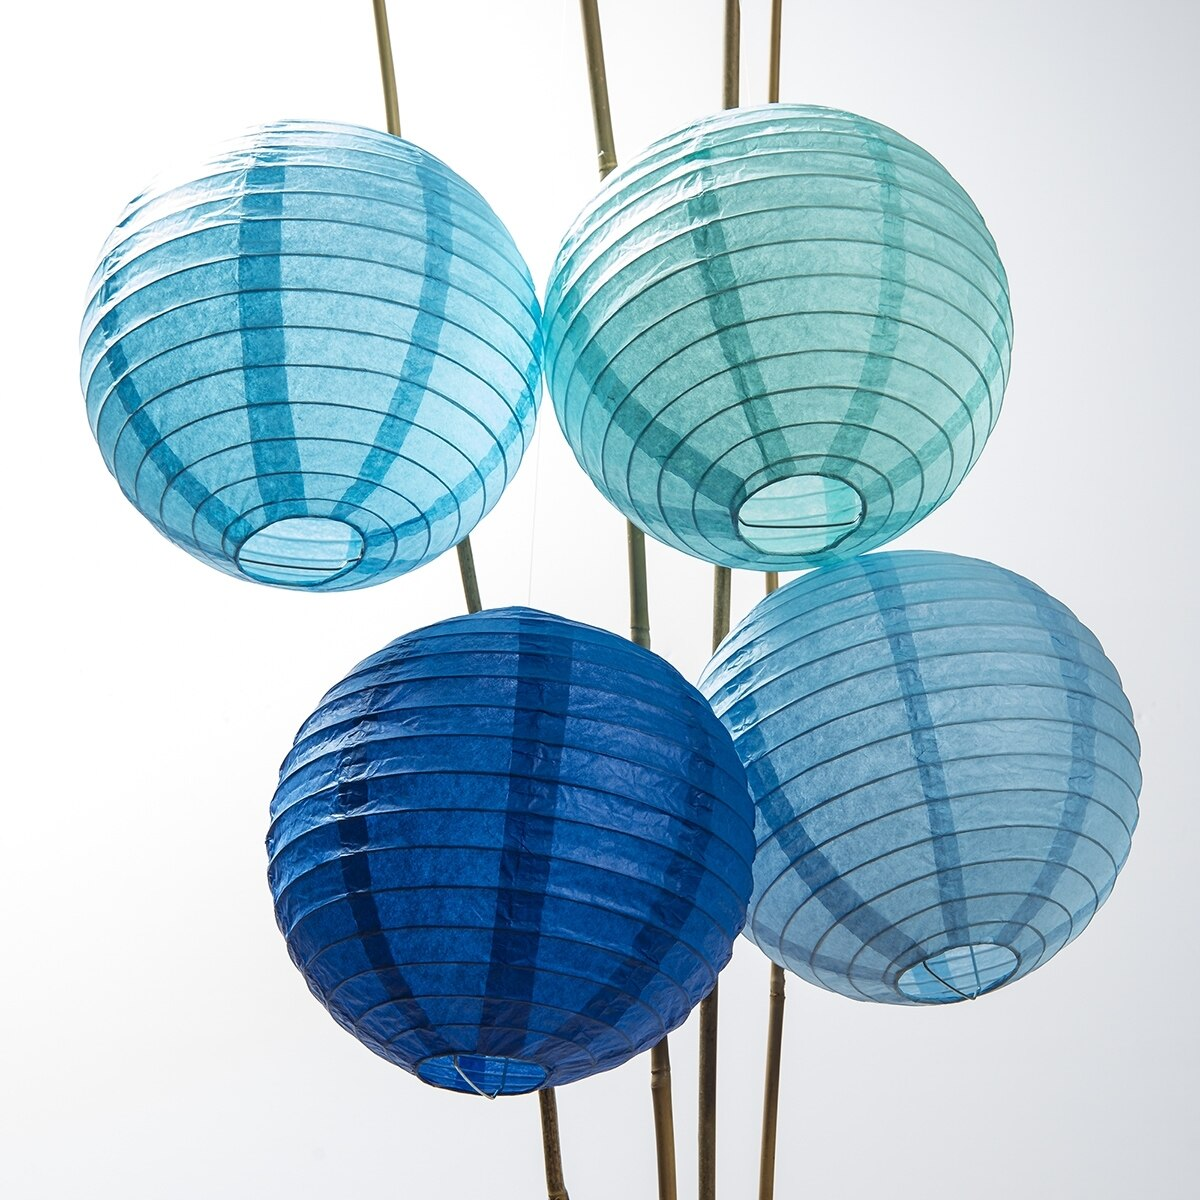 12-Pack of 8 Inch Multicolor Blue No Frills Paper Lanterns - PaperLanternStore.com - Paper Lanterns, Decor, Party Lights & More